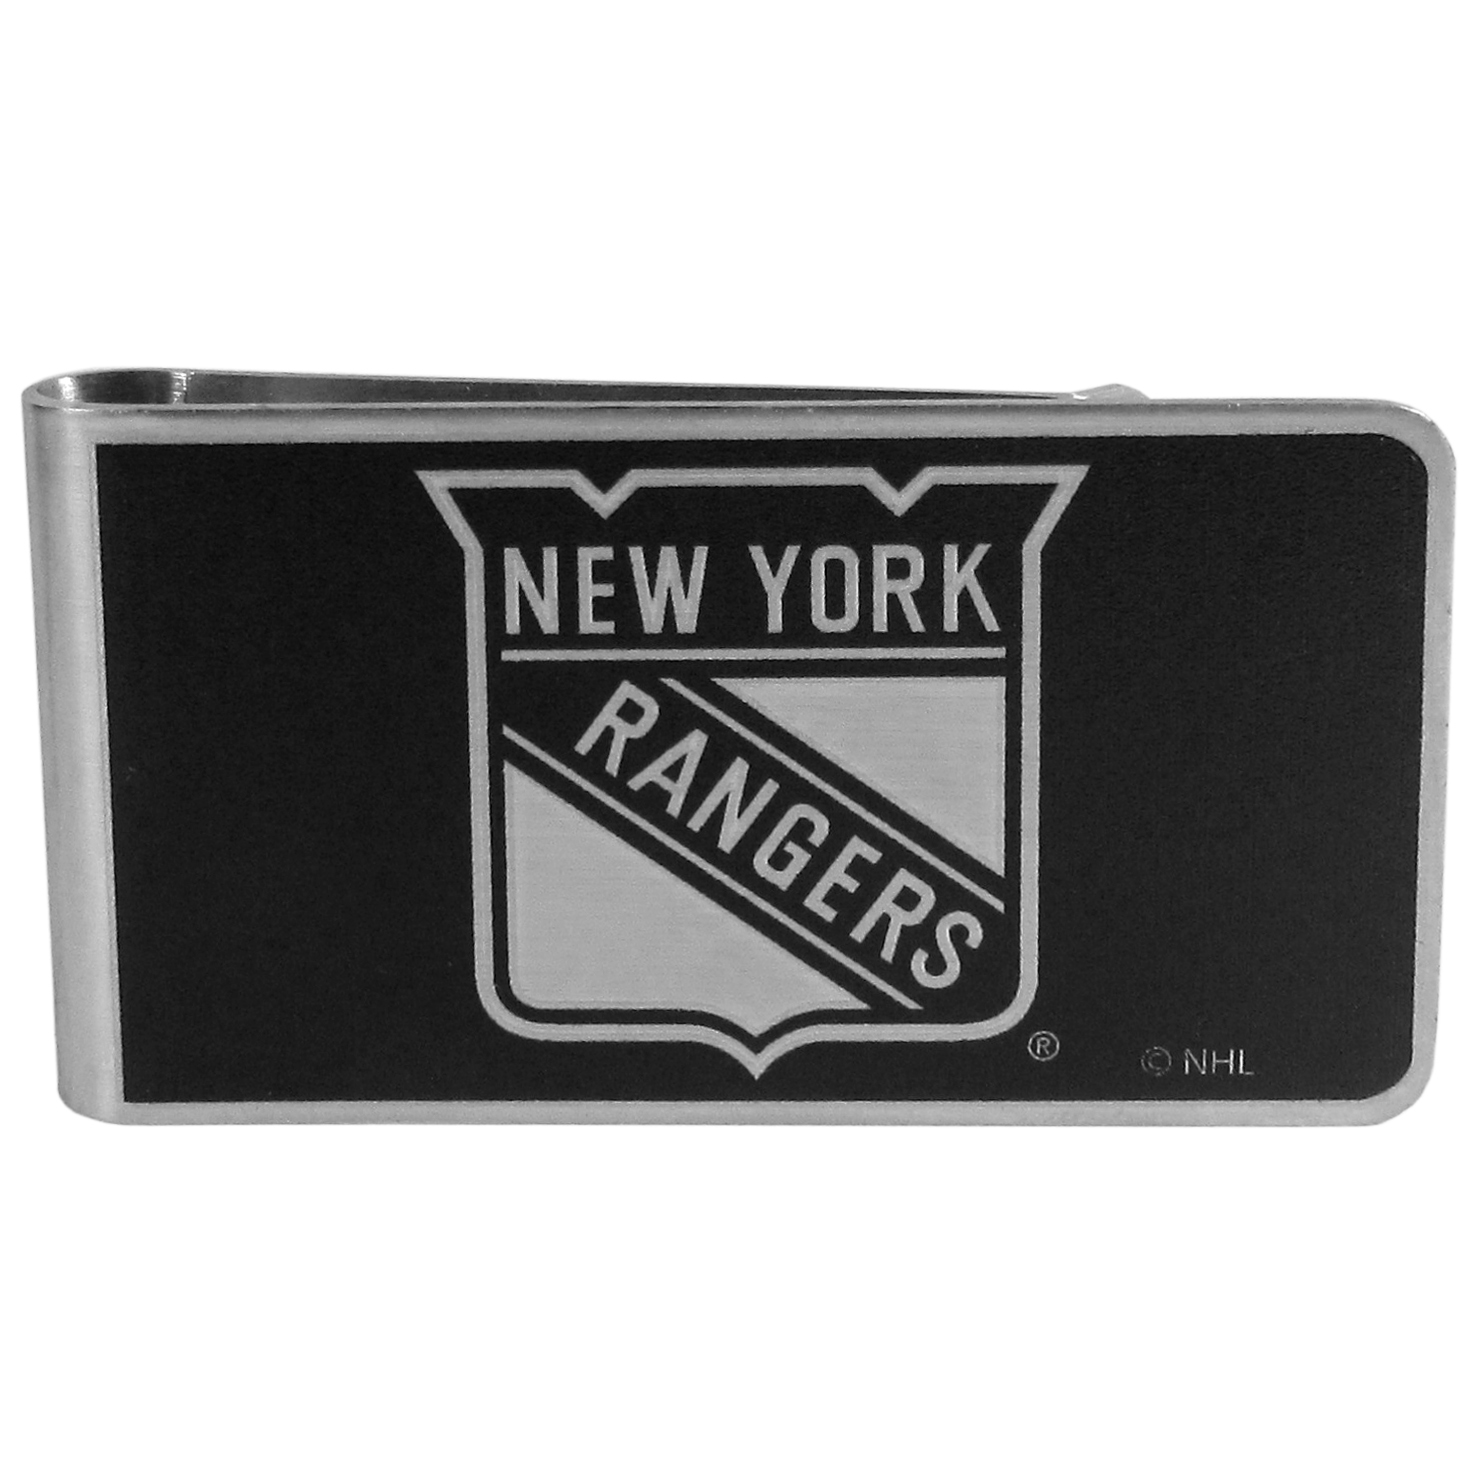 New York Rangers® Black and Steel Money Clip - Our monochromatic steel money clips have a classic style and superior quality. The strong, steel clip has a black overlay of the New York Rangers® logo over the brushed metal finish creating a stylish men's fashion accessory that would make any fan proud.